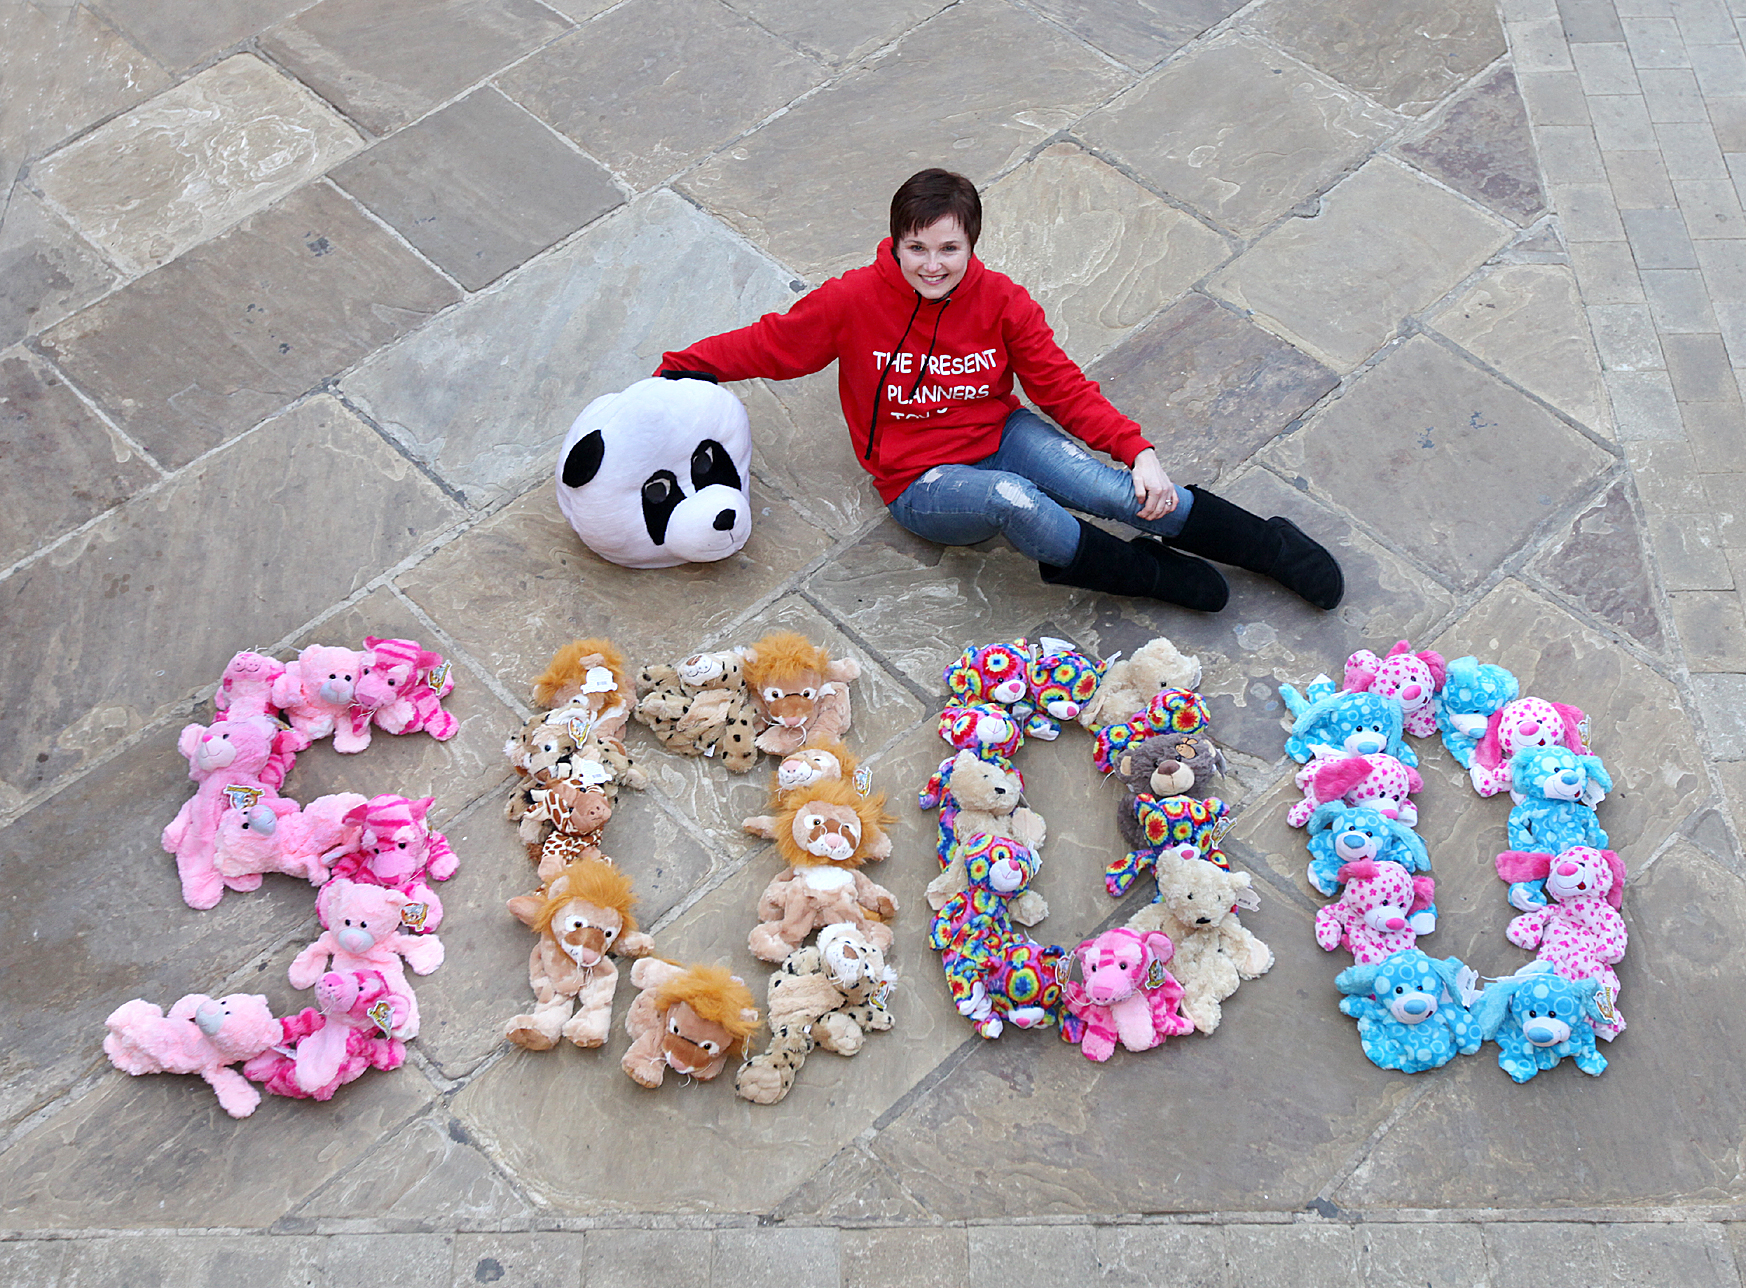 Owner Lisa Dyson celebrates her teddy bear landmark with a 5,000 motif made of toys